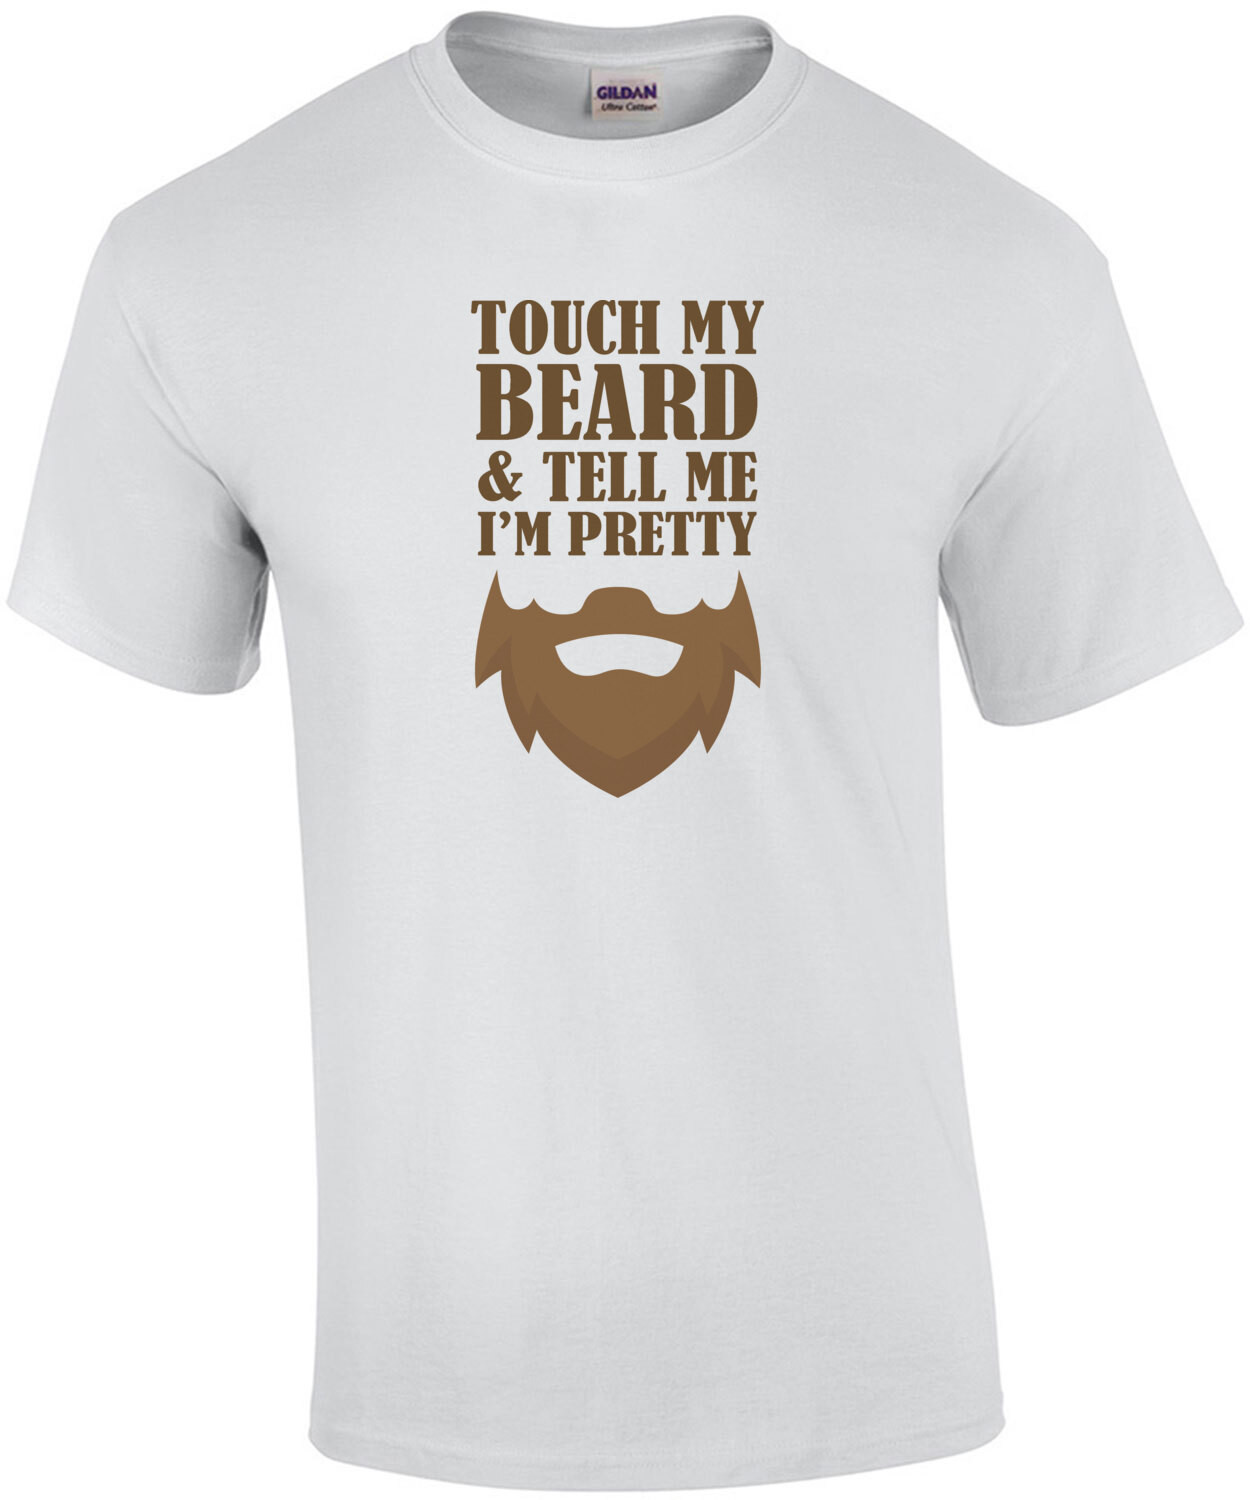 Touch my beard and tell me I'm pretty - funny beard t-shirt